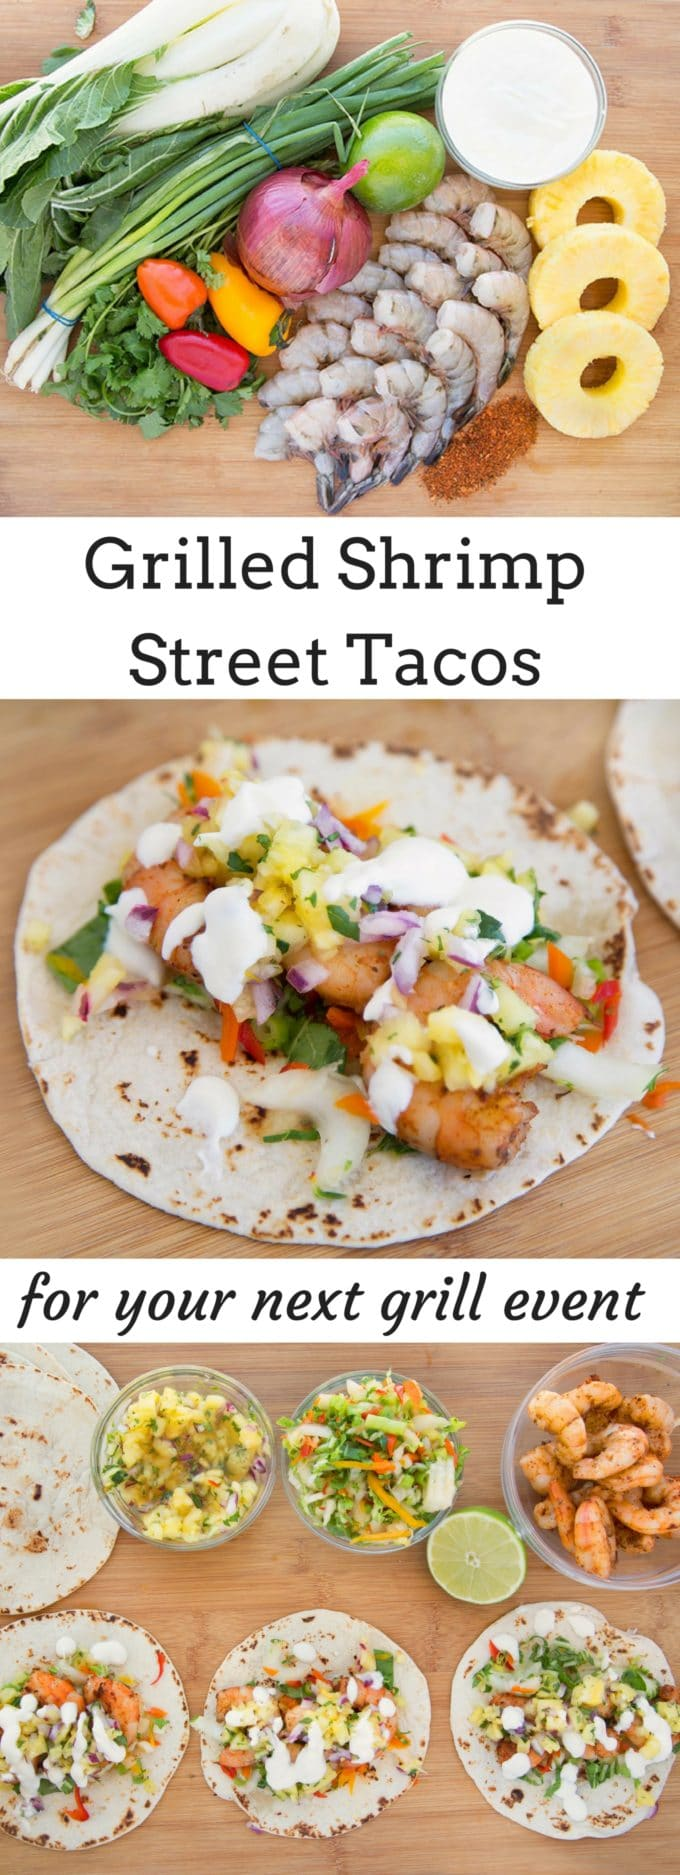 you'll love my grilled shrimp street tacos recipe at your next grill event! Flour tortilla filled with a bok choy slaw, grilled seasoned shrimp, pineapple salsa and a lime crema. All thanks to The American Shrimp Company #ad